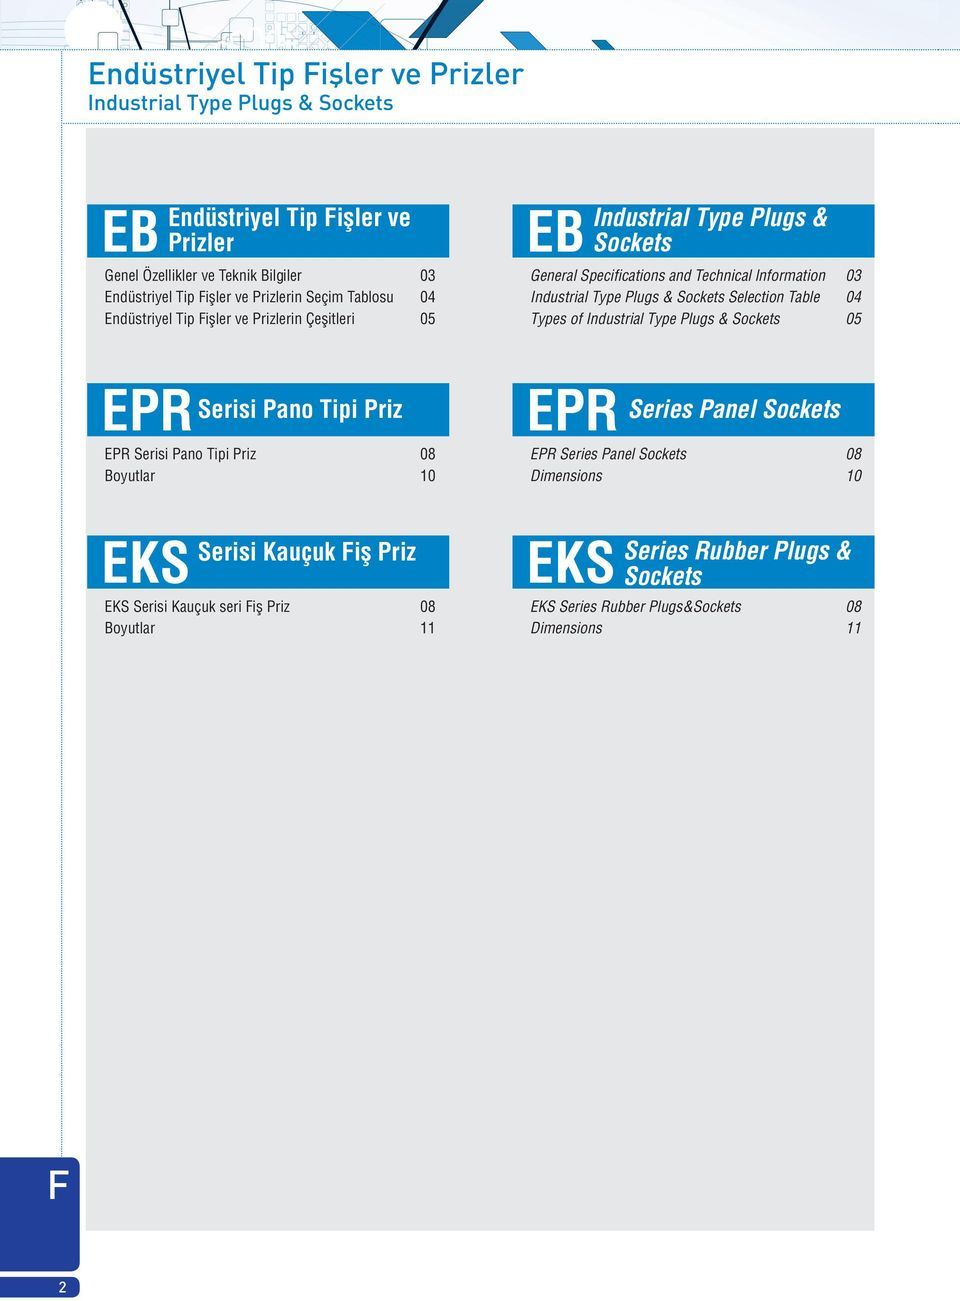 Selection Table 04 s of Industrial Plugs & Sockets 05 EPR Serisi Pano i Priz EPR Serisi Pano i Priz 08 Boyutlar 10 EPR Series Panel Sockets EPR Series Panel Sockets 08